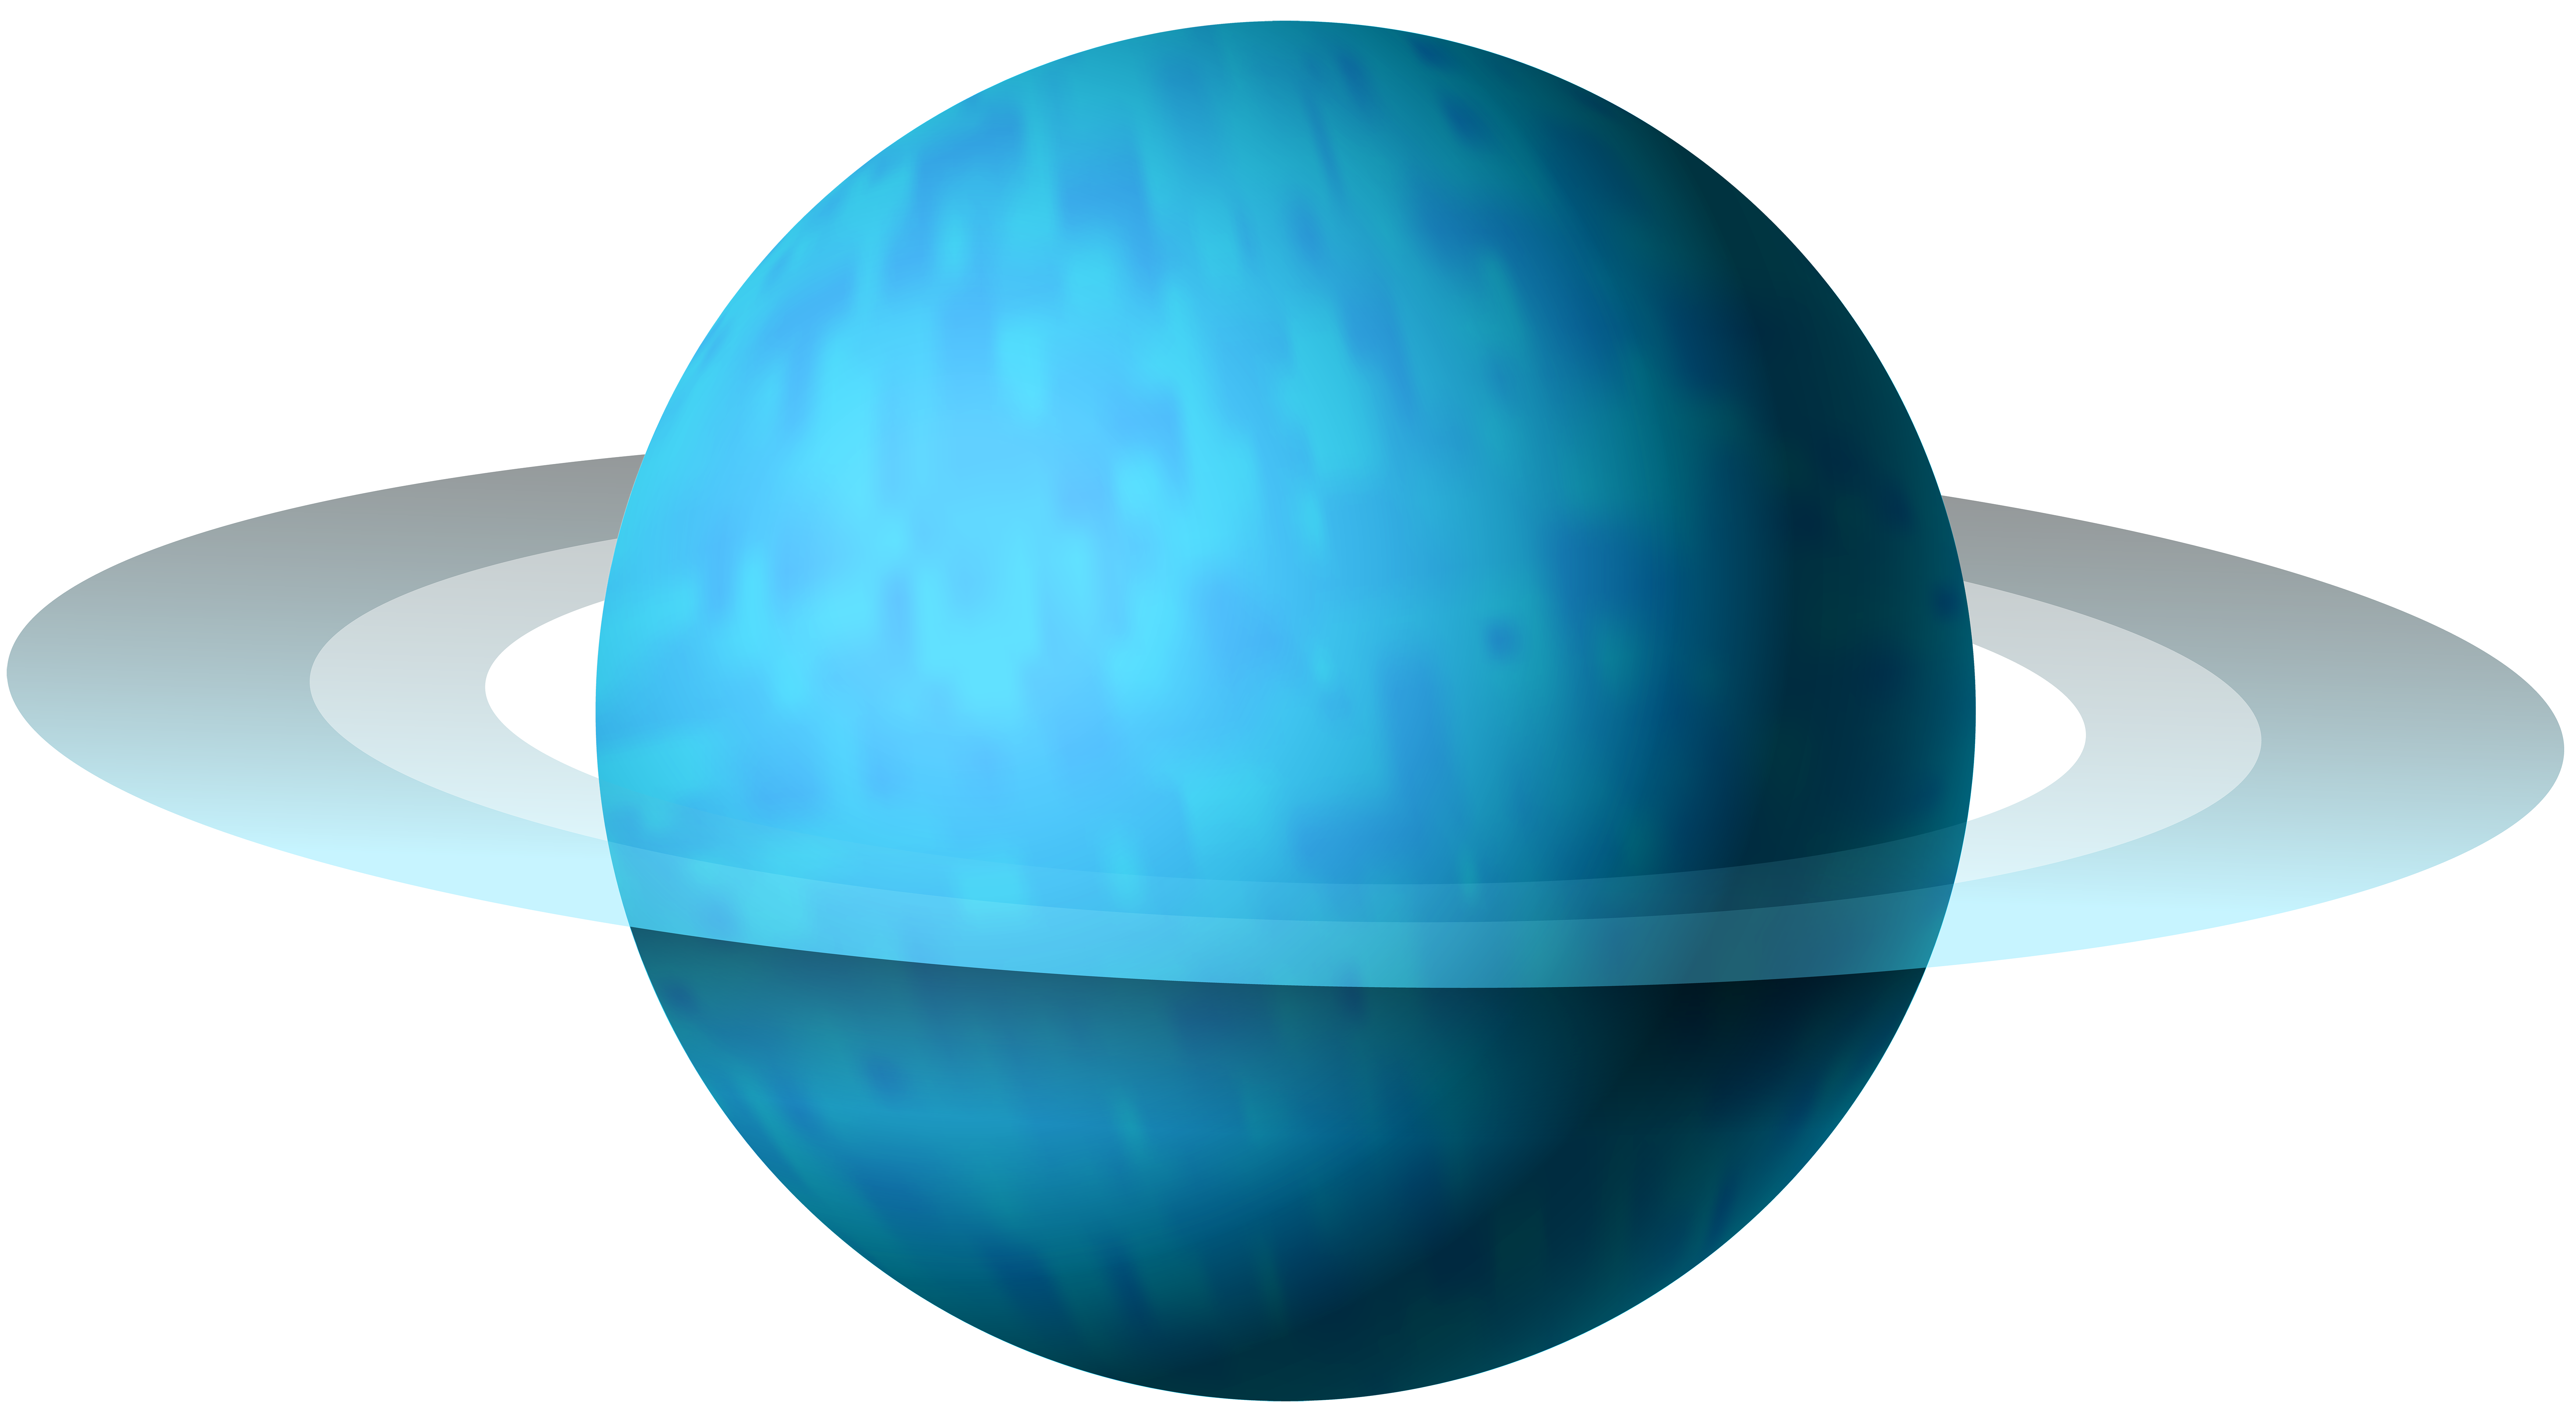 Clipart Of Uranus-Clipart Of Uranus-2